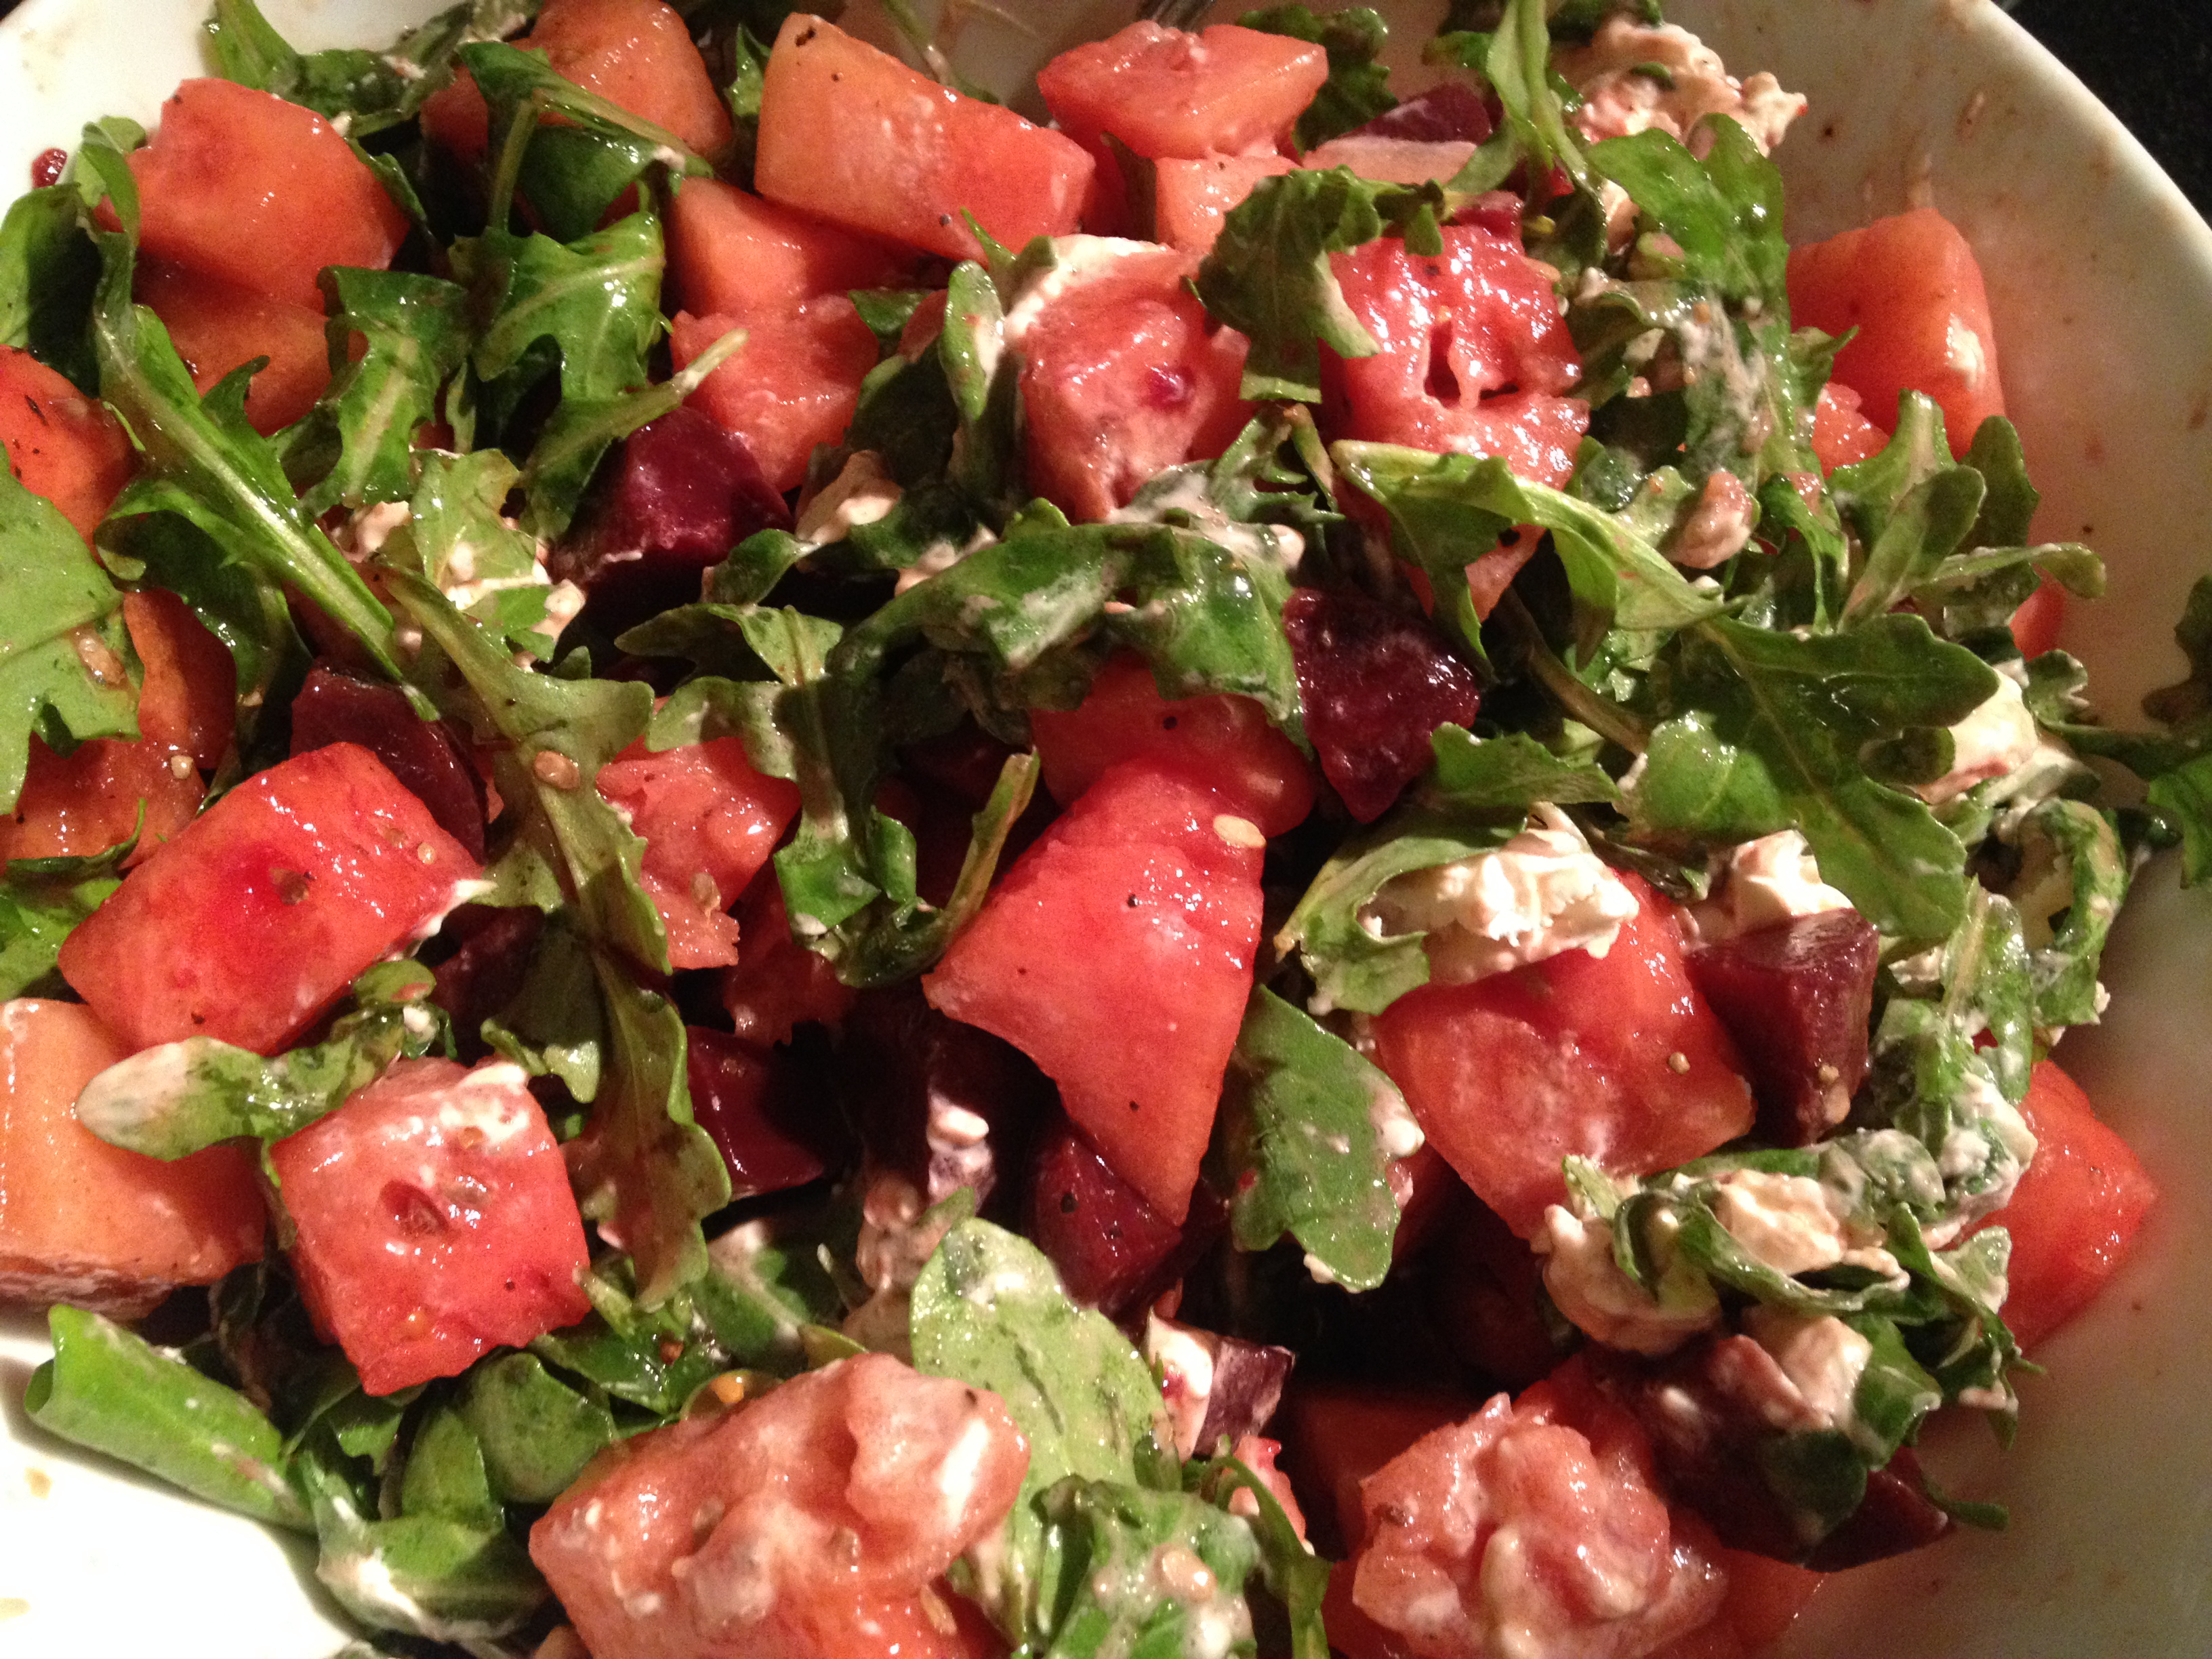 Perfect Potluck Salad: Watermelon and Beets Layered with ...